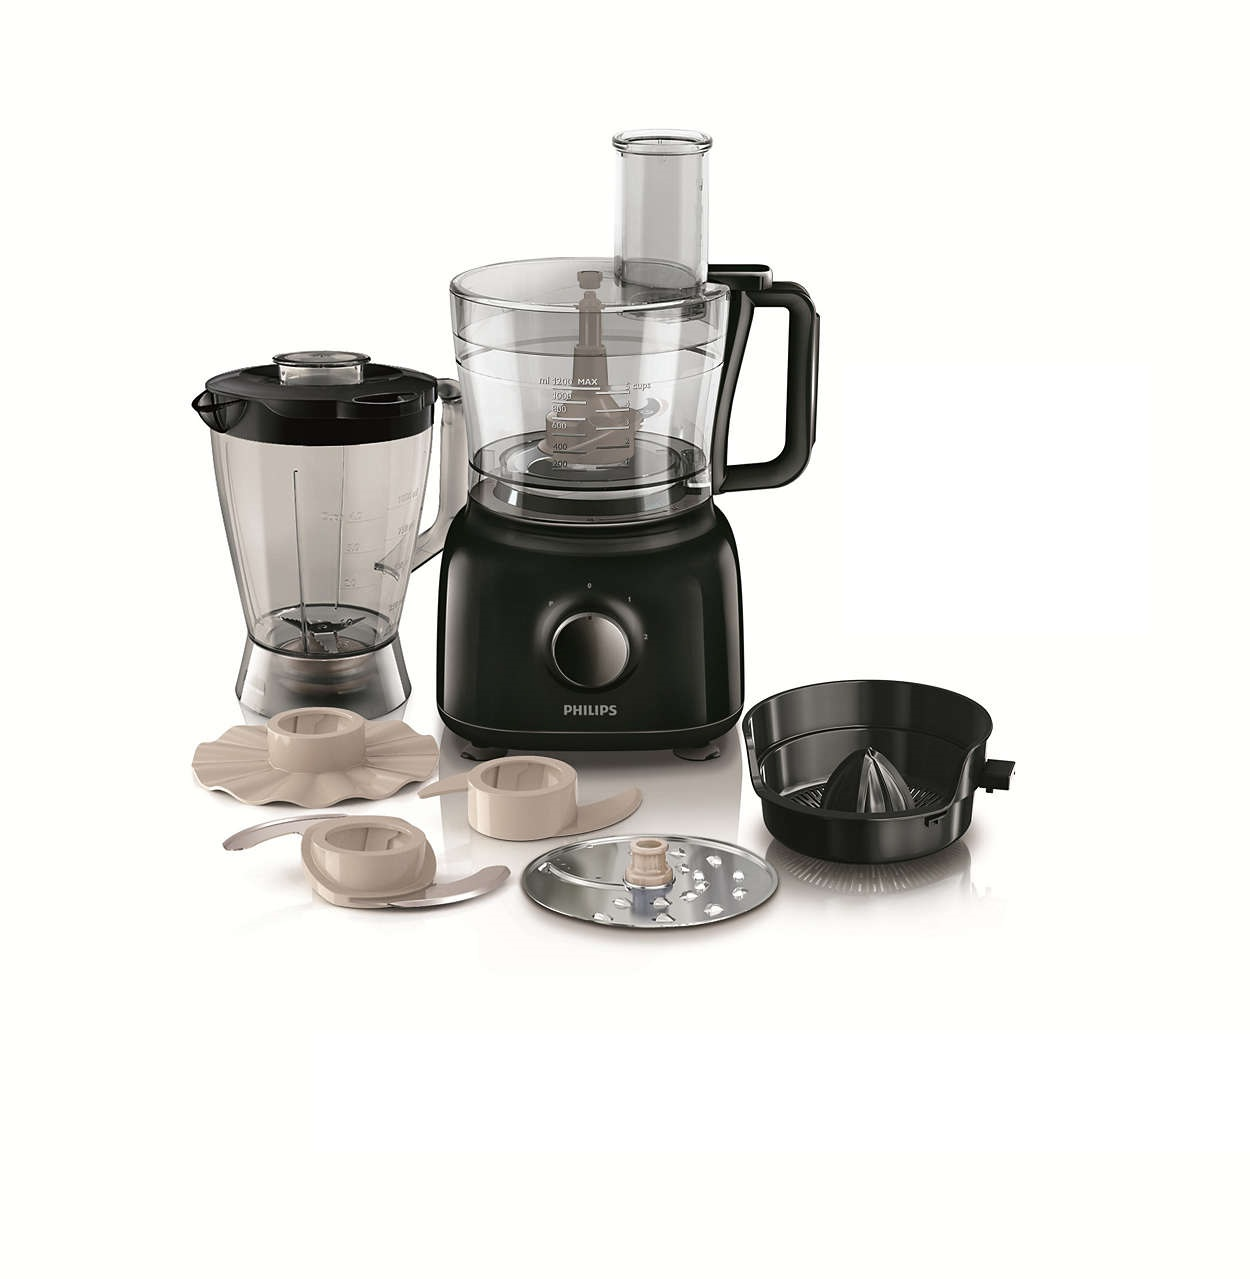 PHILIPS FOOD PROCESSOR HR7629/90 Reviews, Price, Service